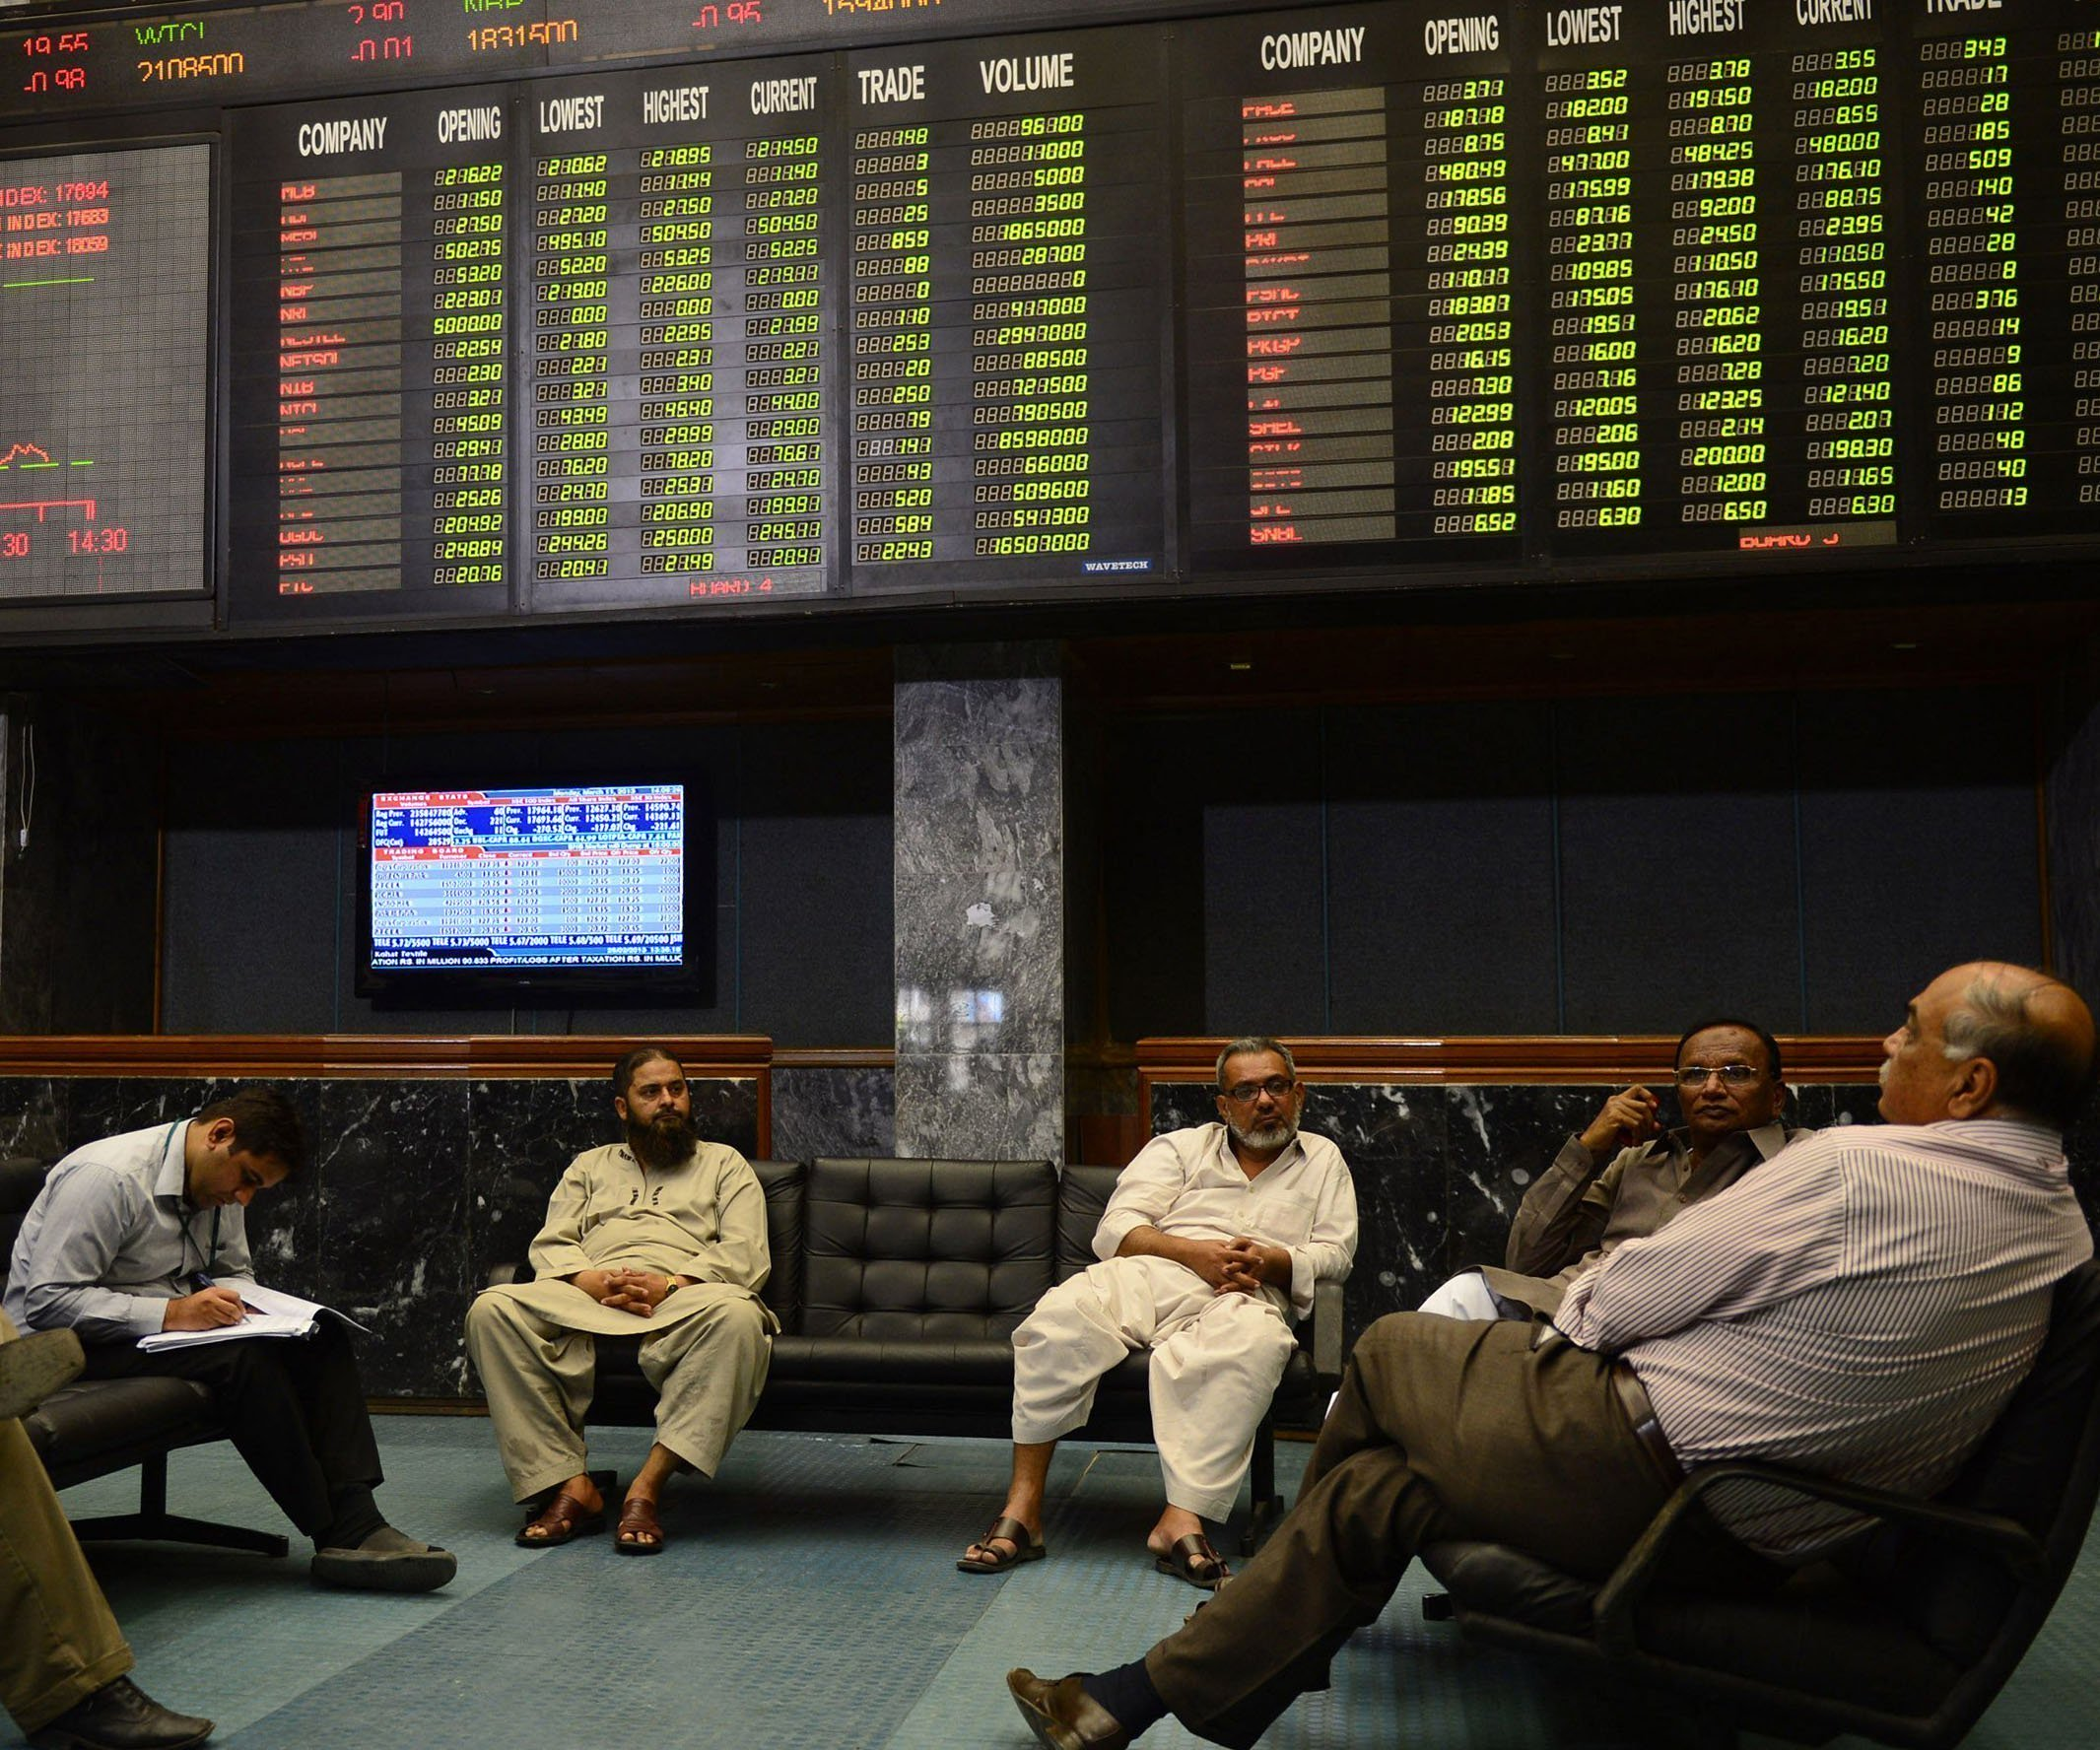 benchmark index increases 952 8 points to settle at 34 111 64 photo afp